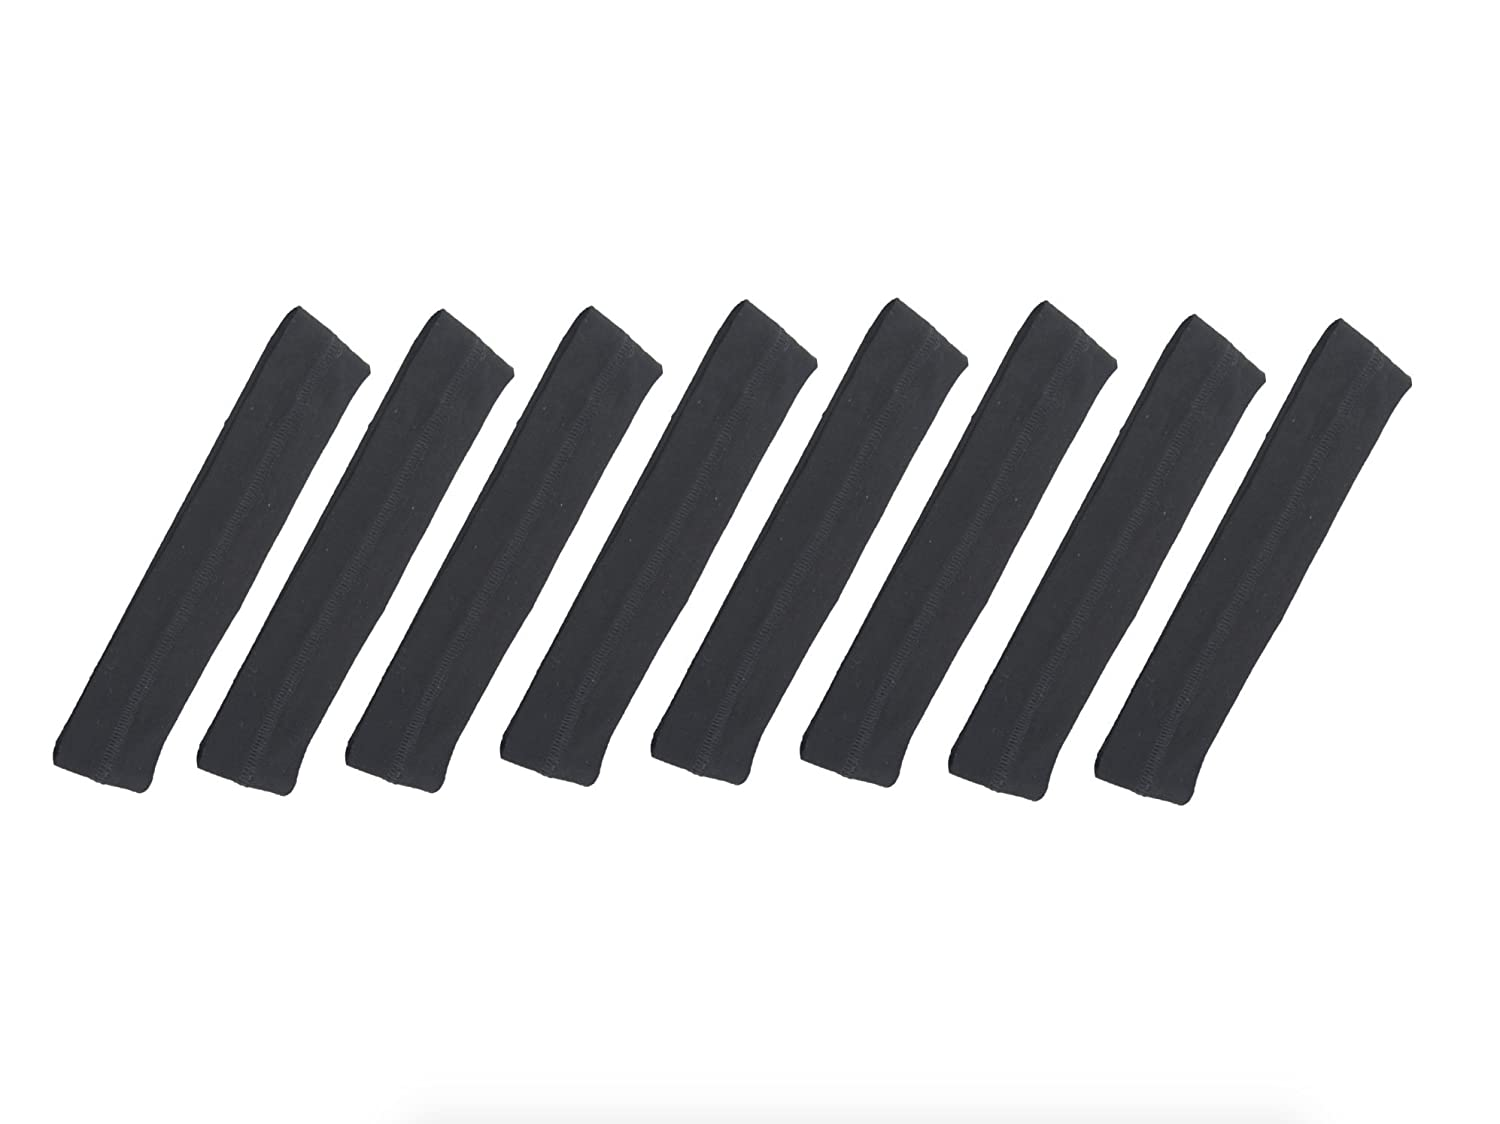 8-Pack Bamboo/Cotton Headband - Ideal to Hold Bangs and Unruly Frizzy Hair - Stays in Place, Super Cute